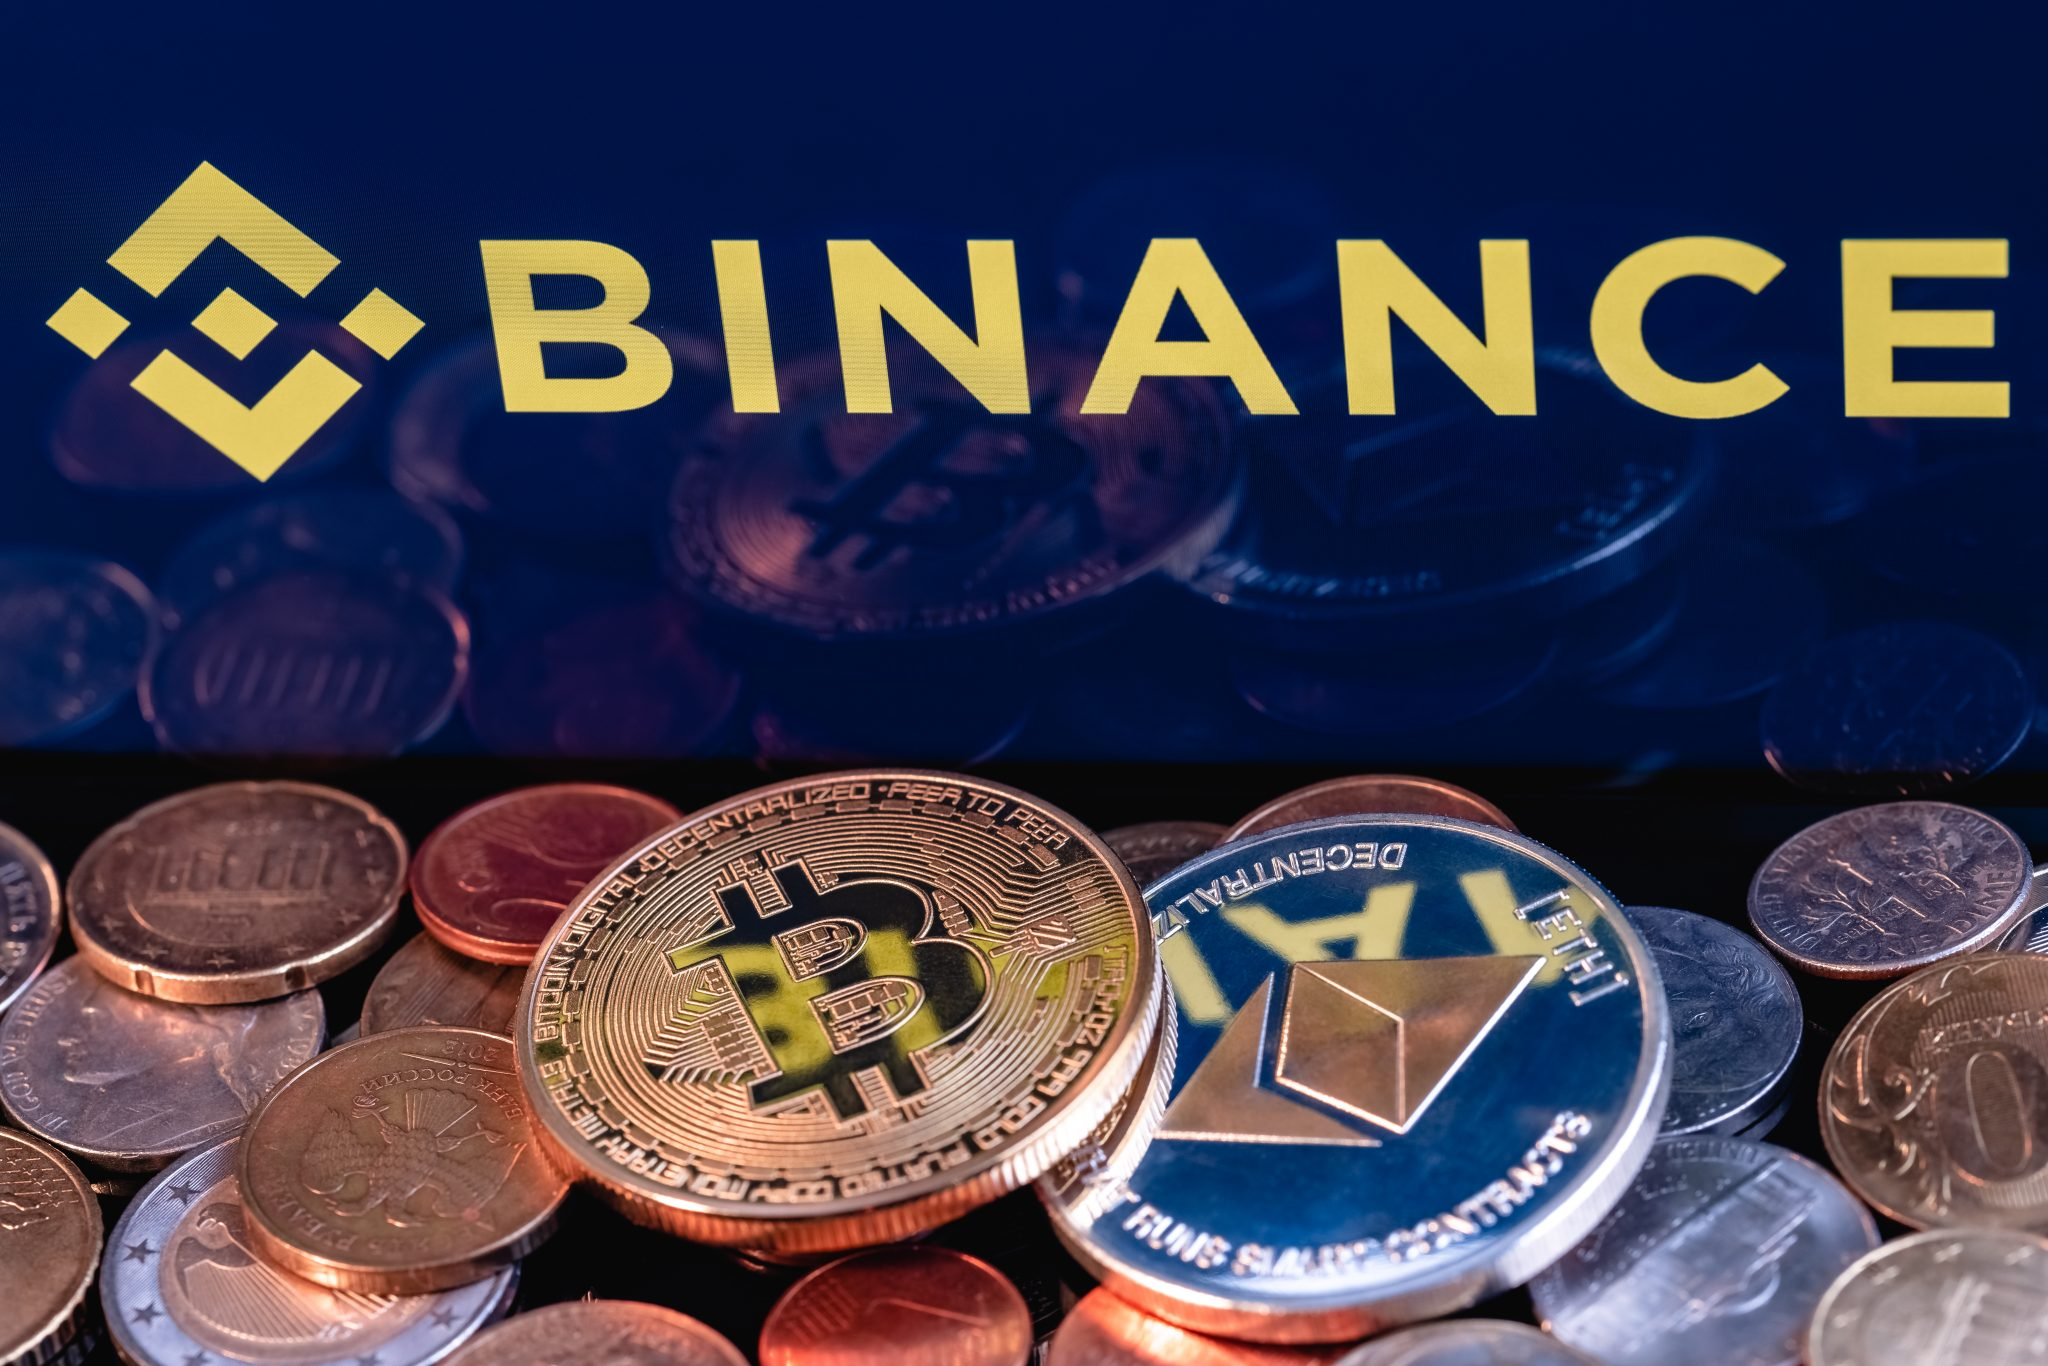 Kazan, Russia - May 17, 2021: Binance is cryptocurrency exchange that provides a platform for trading various cryptocurrencies. Ethereum coin and Bitcoin on the background of the BINANCE inscription.